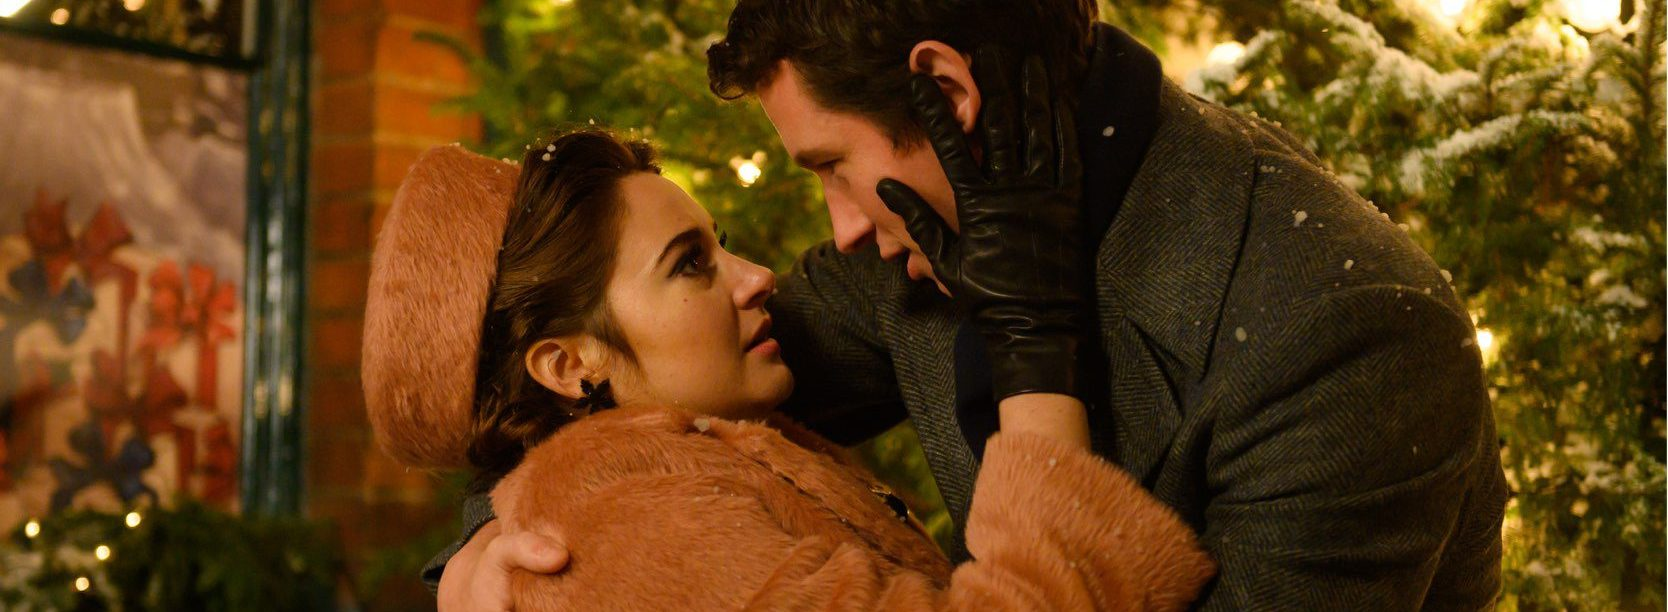 """Review: """"Last Love Letter From Your Lover"""" Makes A Strong Case For True Love"""